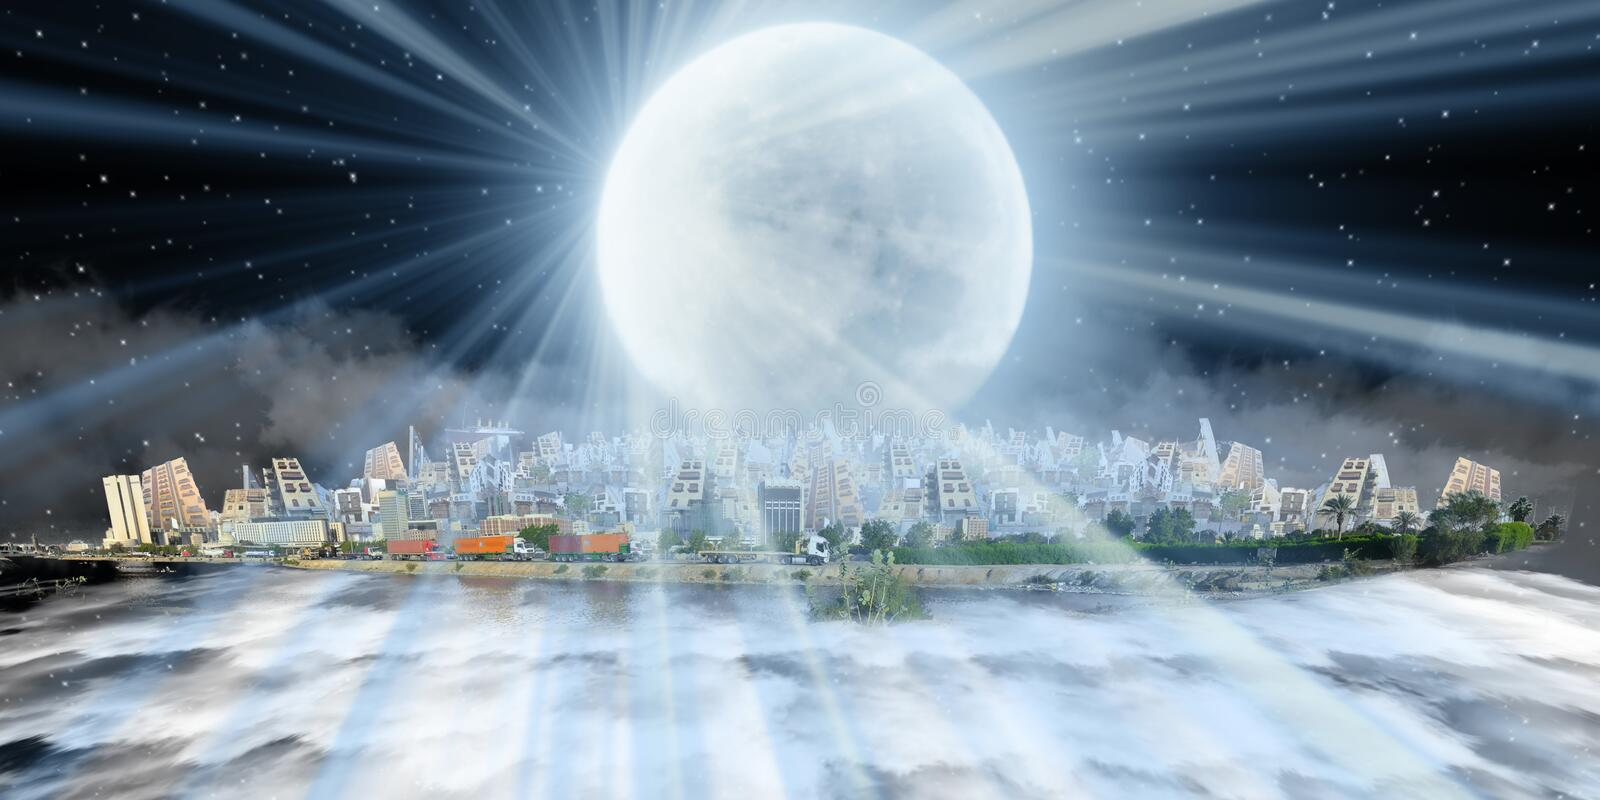 Old and new jeddah over sea of clouds at night with moon beam royalty free illustration